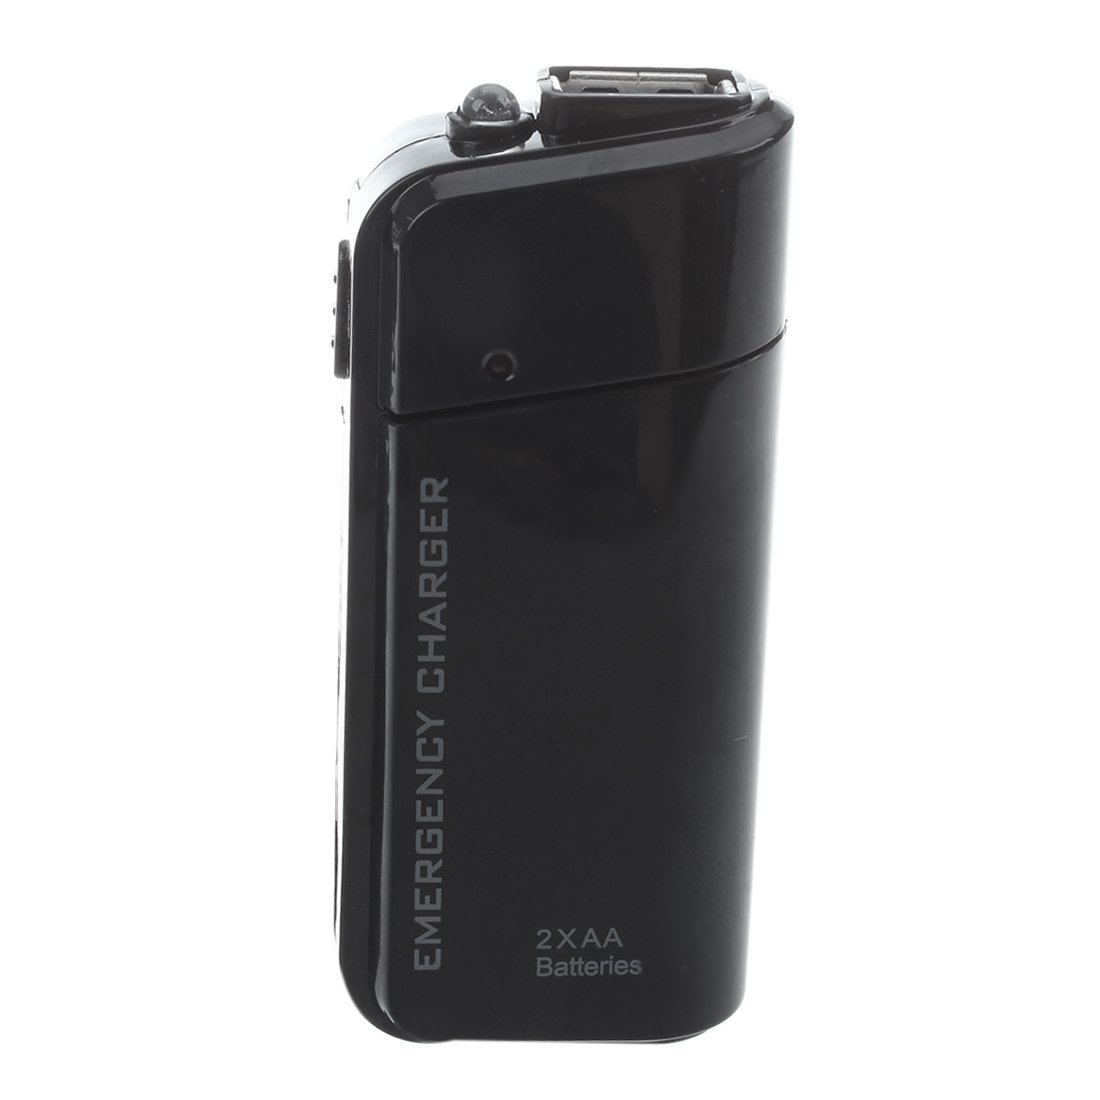 SODIAL(R) Portable USB Emergency AA Battery Powered Charger With Flashlight for Cellphone iPhone iPod MP3/MP4 player Black by SODIAL (Image #3)